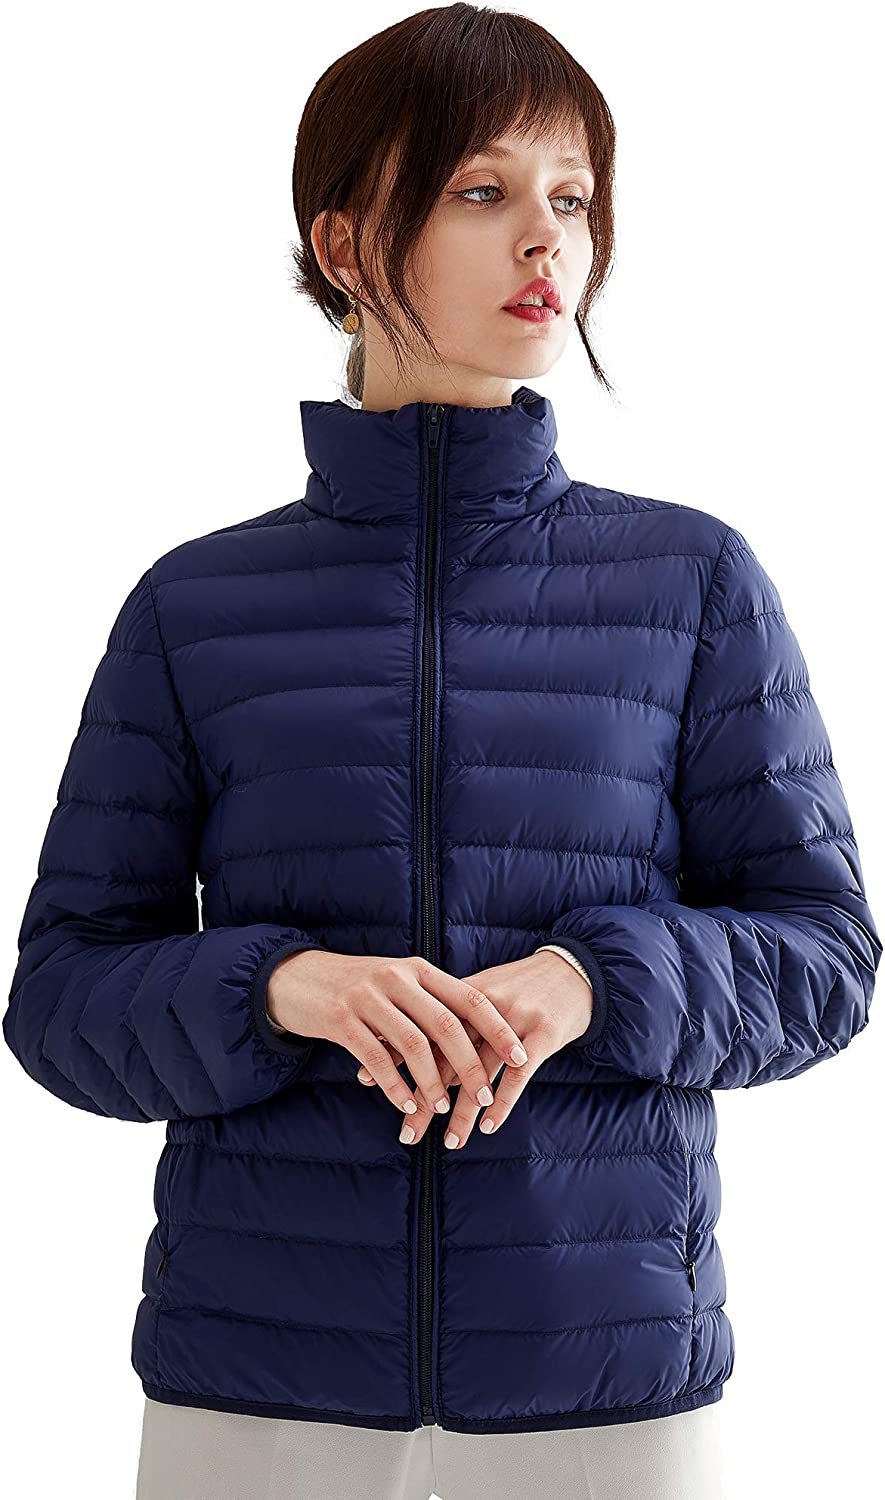 VUTOLEE Women Lightweight Down Jacket Packable Ultralight Outwear Puffer Down Coats Stand Collar Winter Warm Coat L01